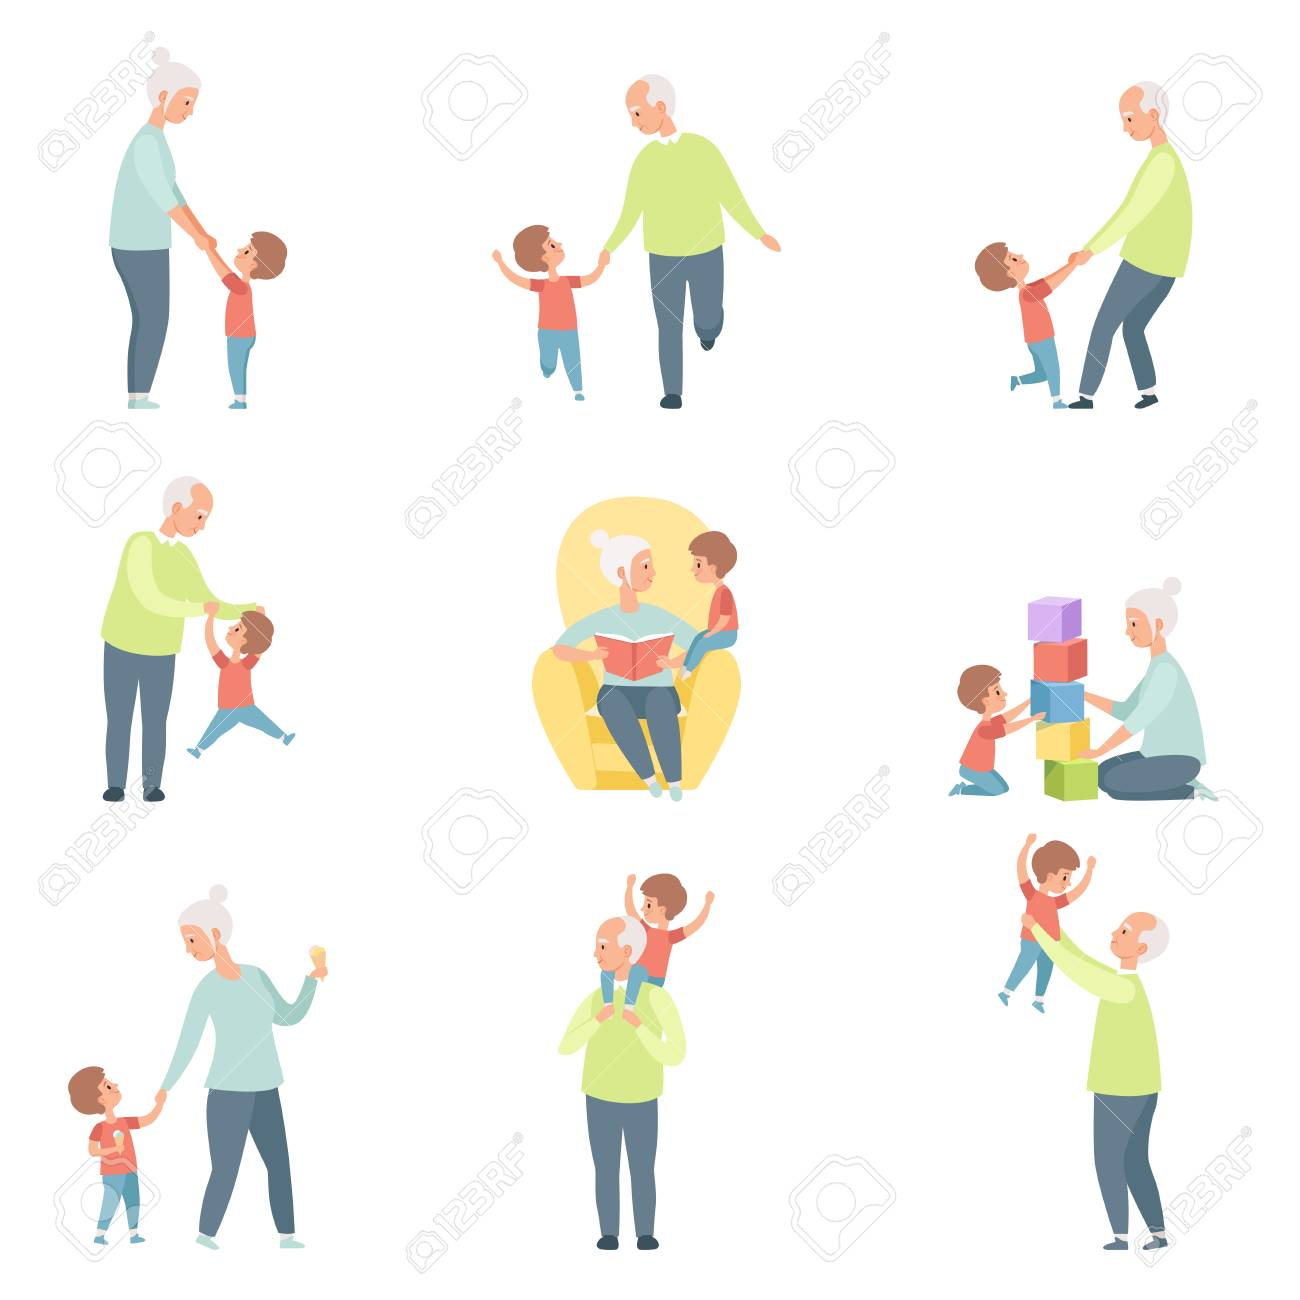 Grandpa and grandma playing, walking and having fun with their grandson set vector Illustrations on a white background - 104333404